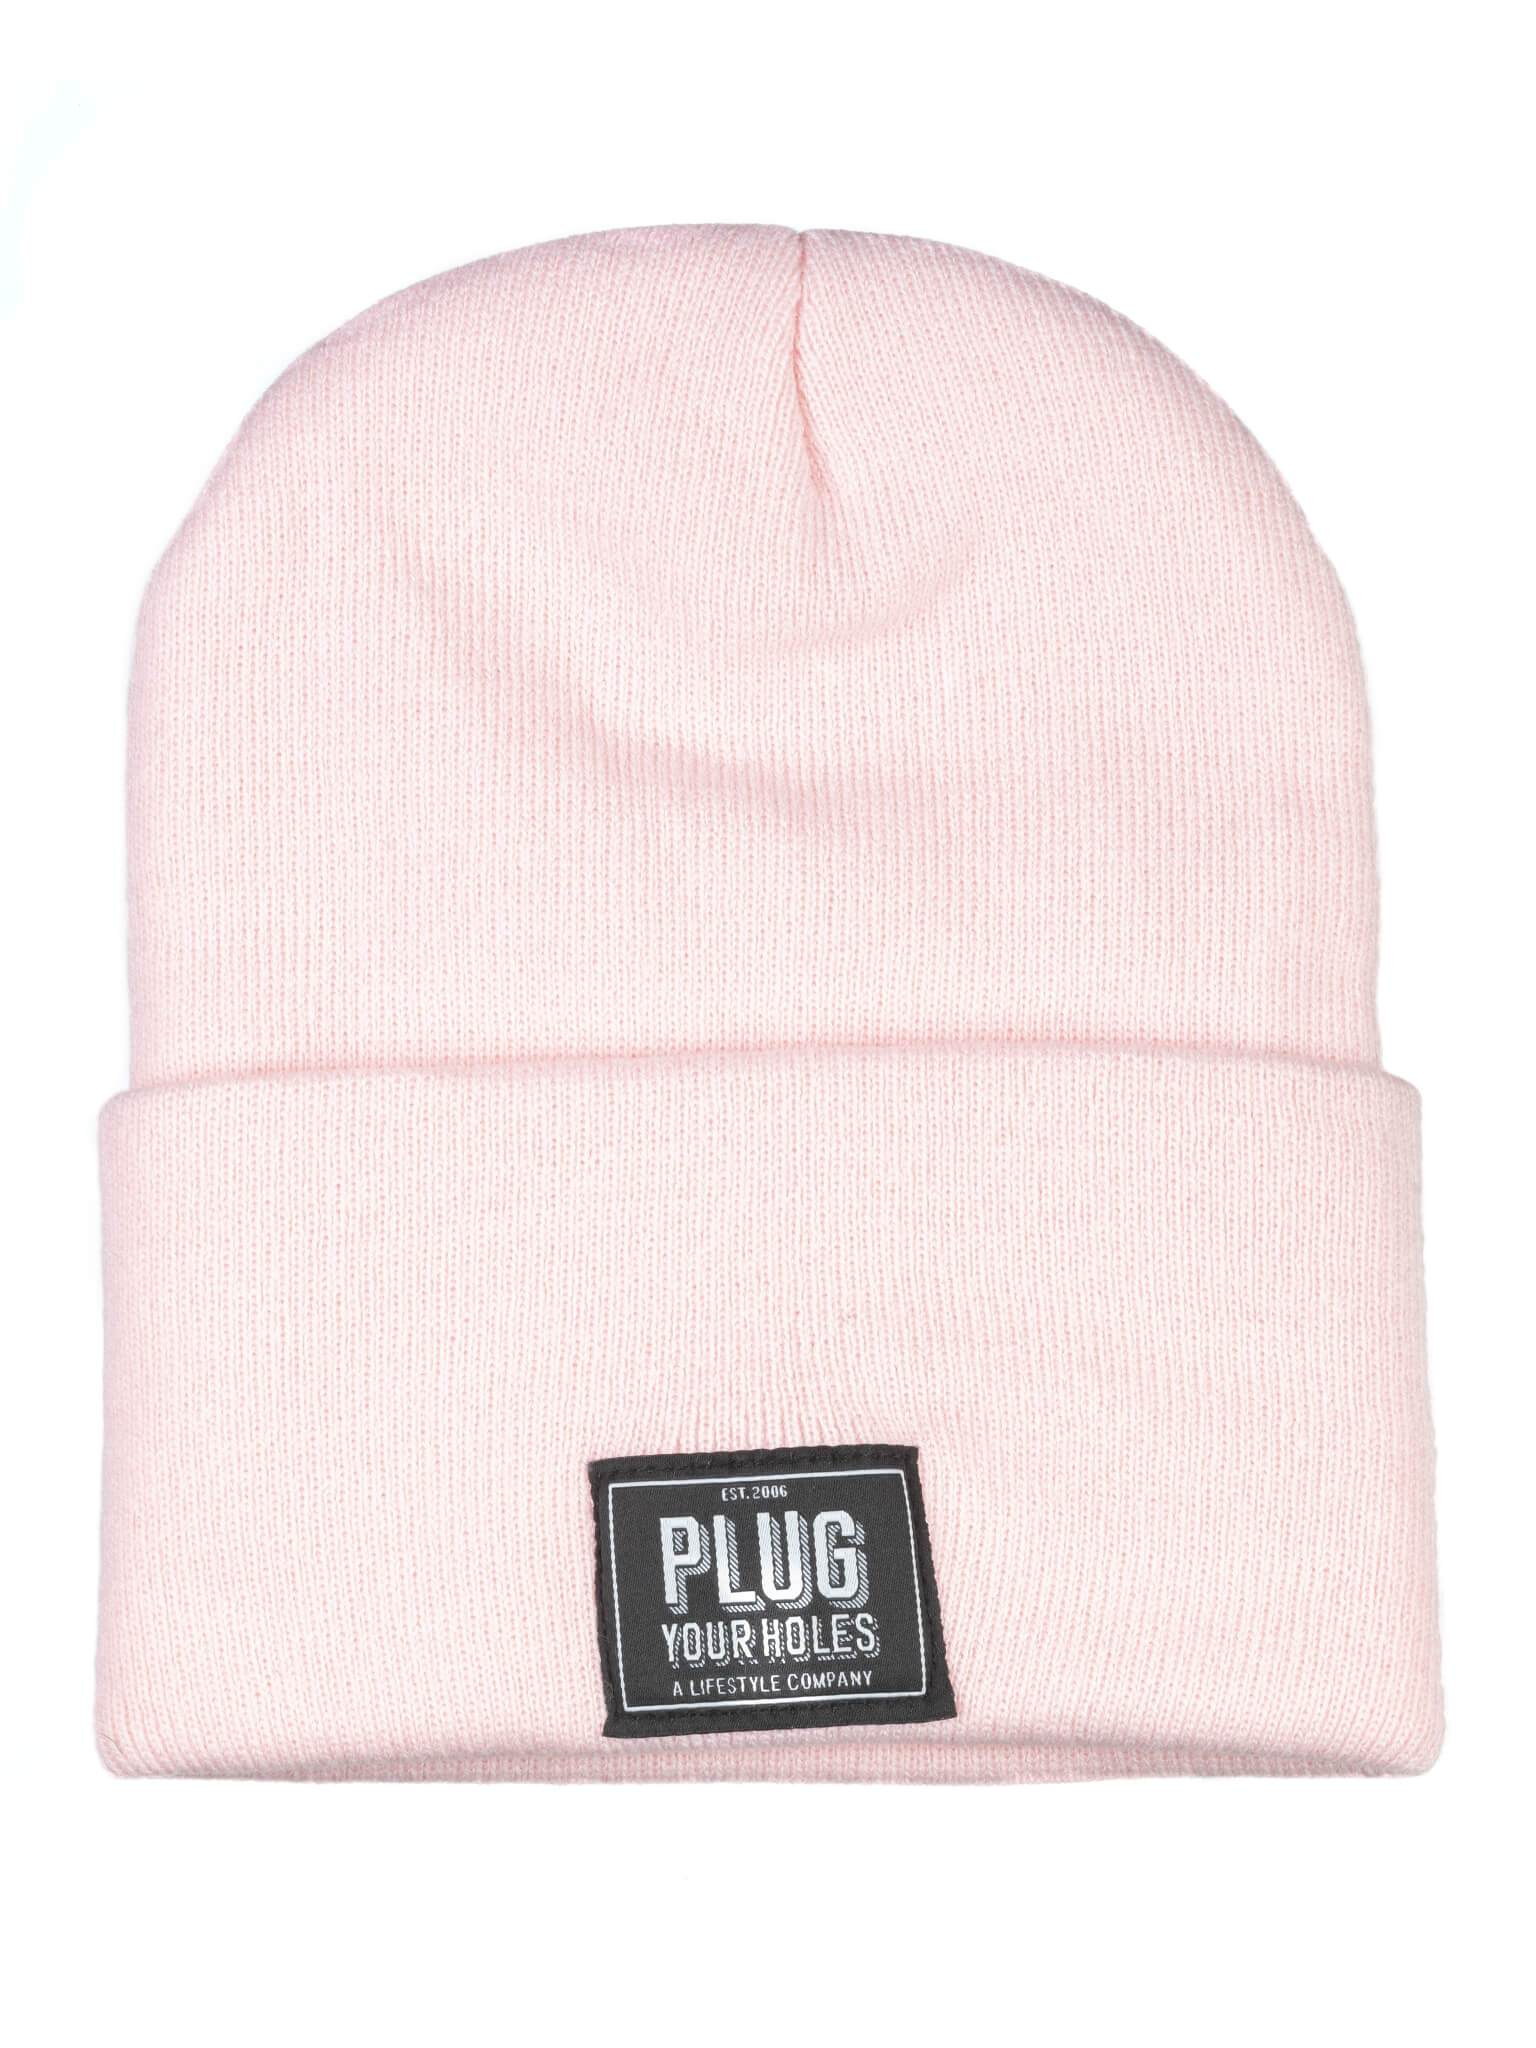 Plug Your Holes Pink Knit Beanie